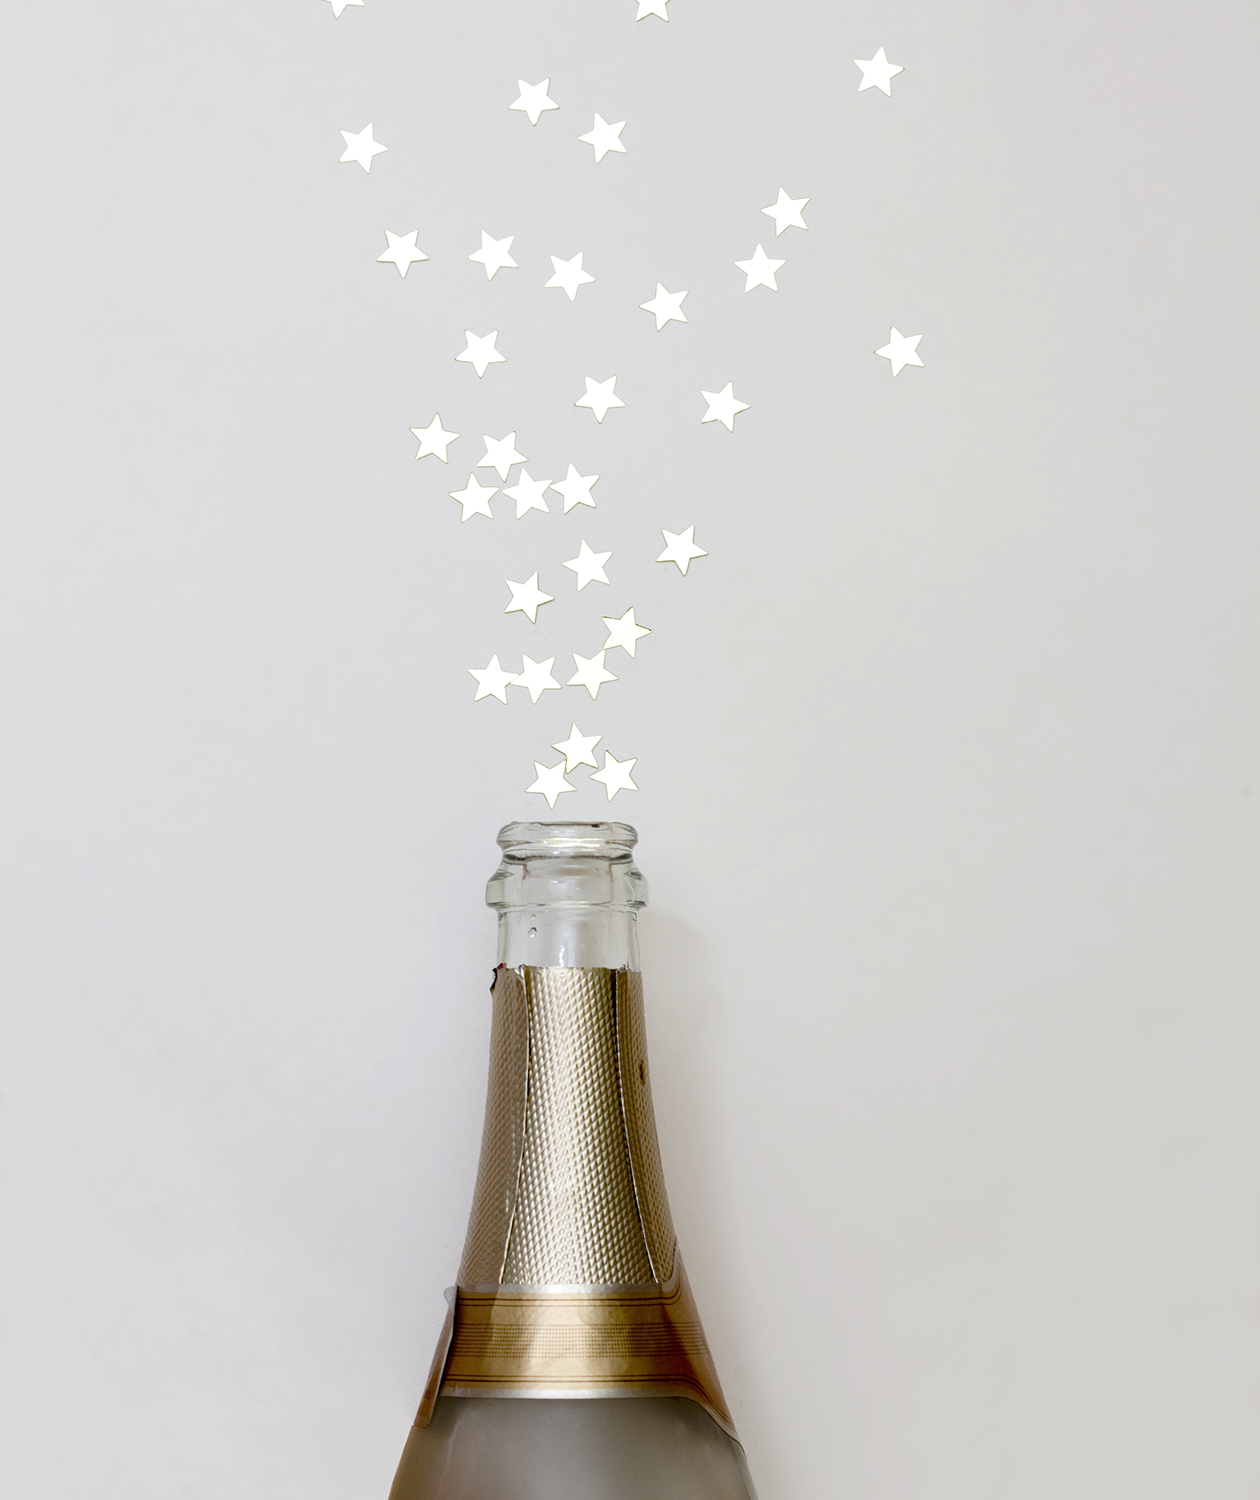 Champagne and stars